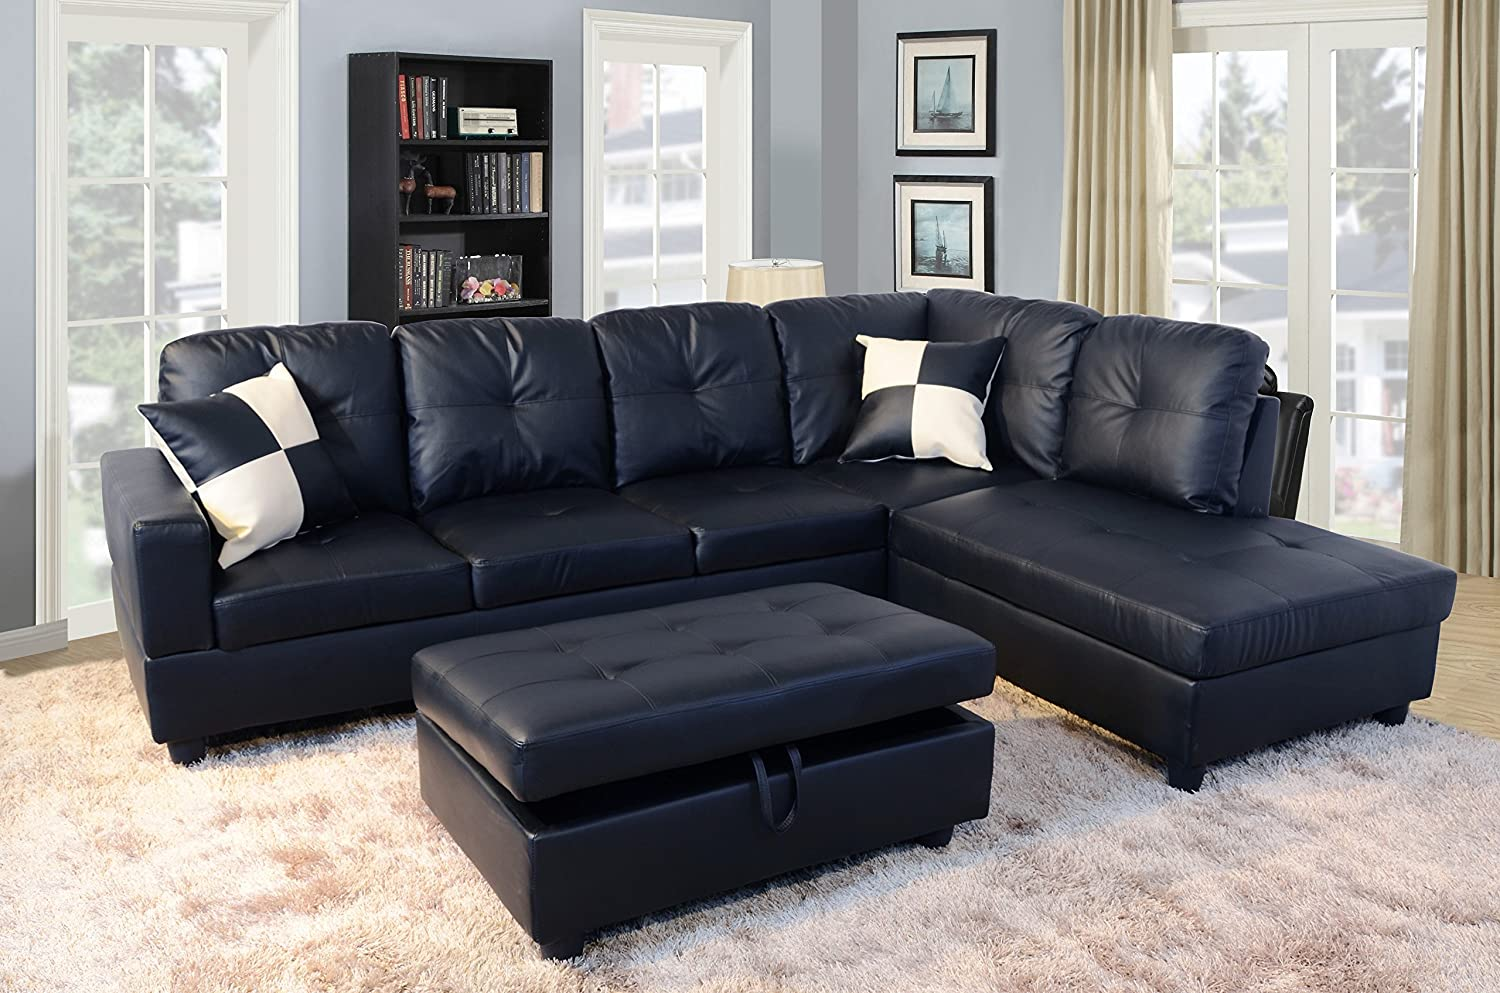 Amazon.com: Lifestyle Furniture Urbania Right Hand Facing Sectional, Black:  Kitchen U0026 Dining